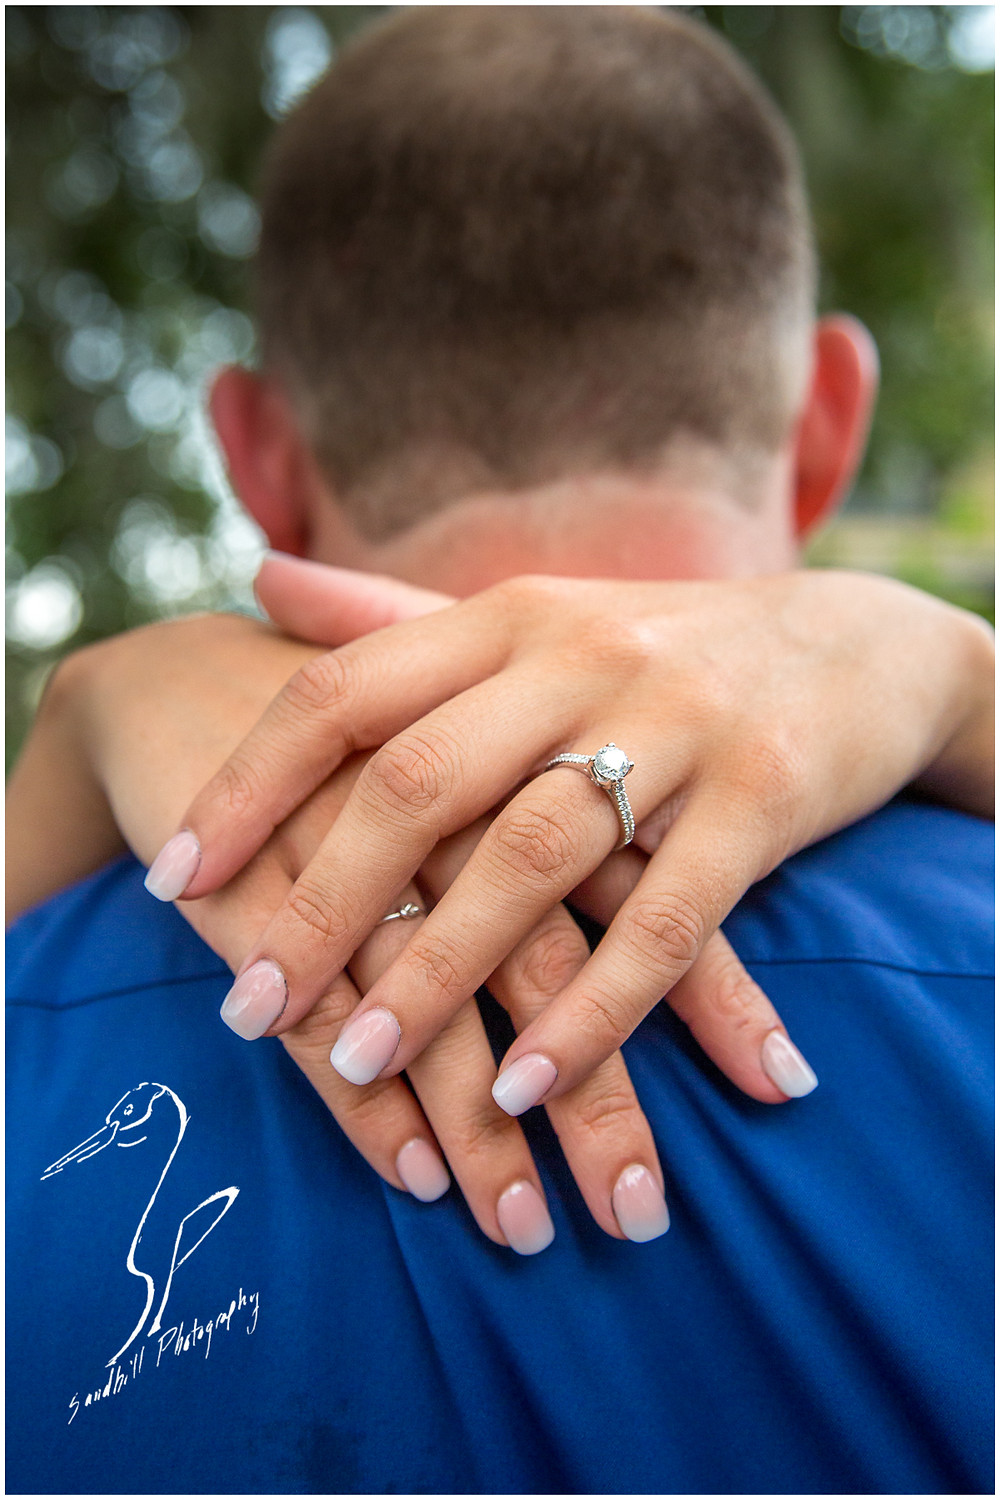 Downtown Bradenton Engagement Photography, detail picture of engagement ring on the hand of a woman embracing her fiance.